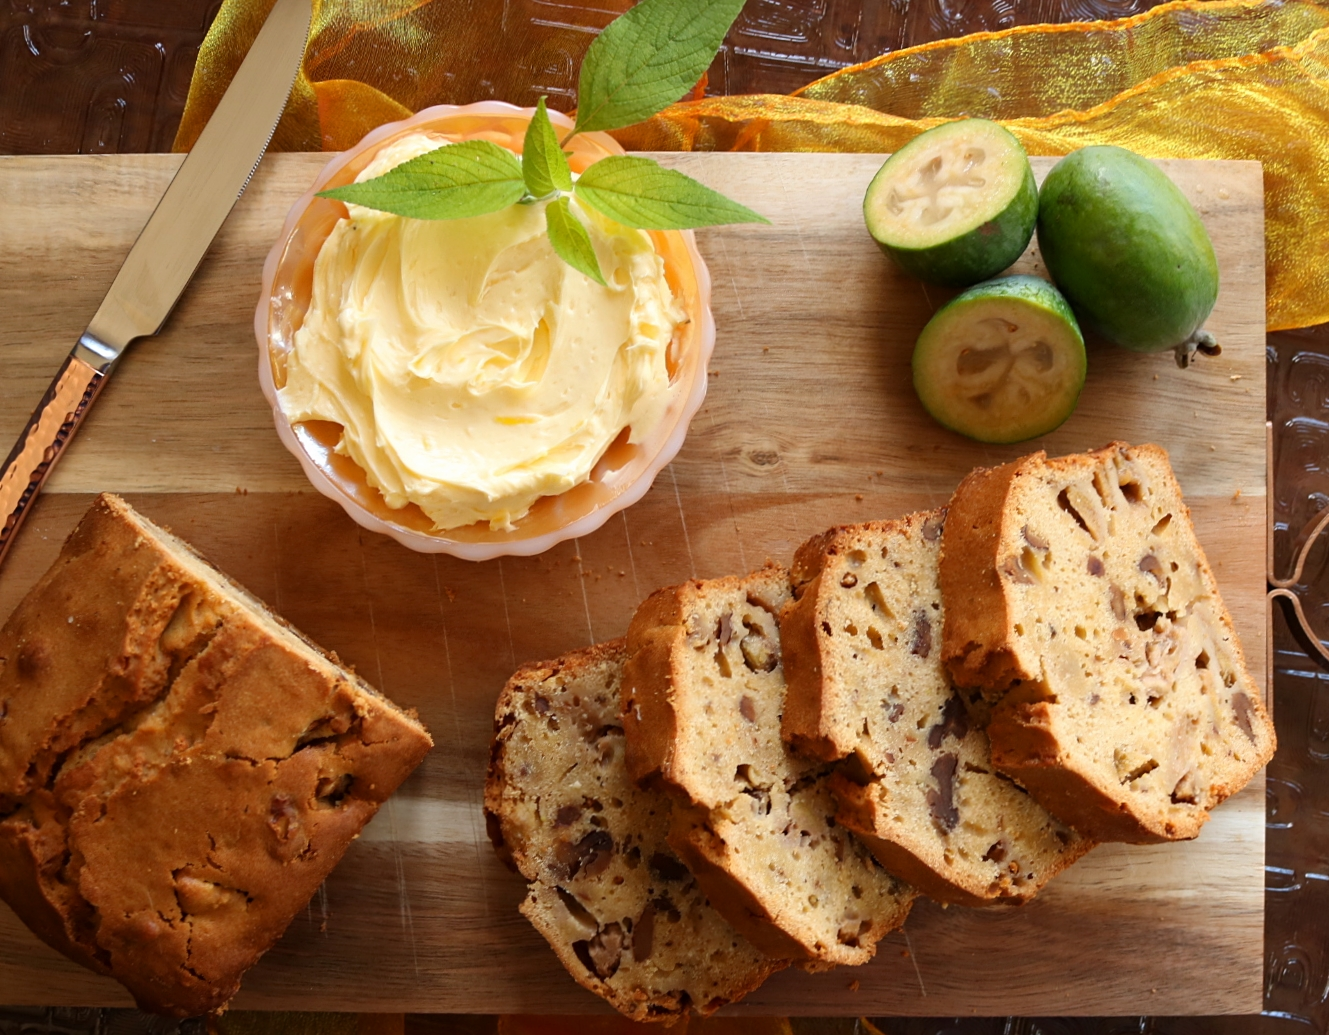 Feijoa & Walnut Gingerbread Loaf with Lemon Butter